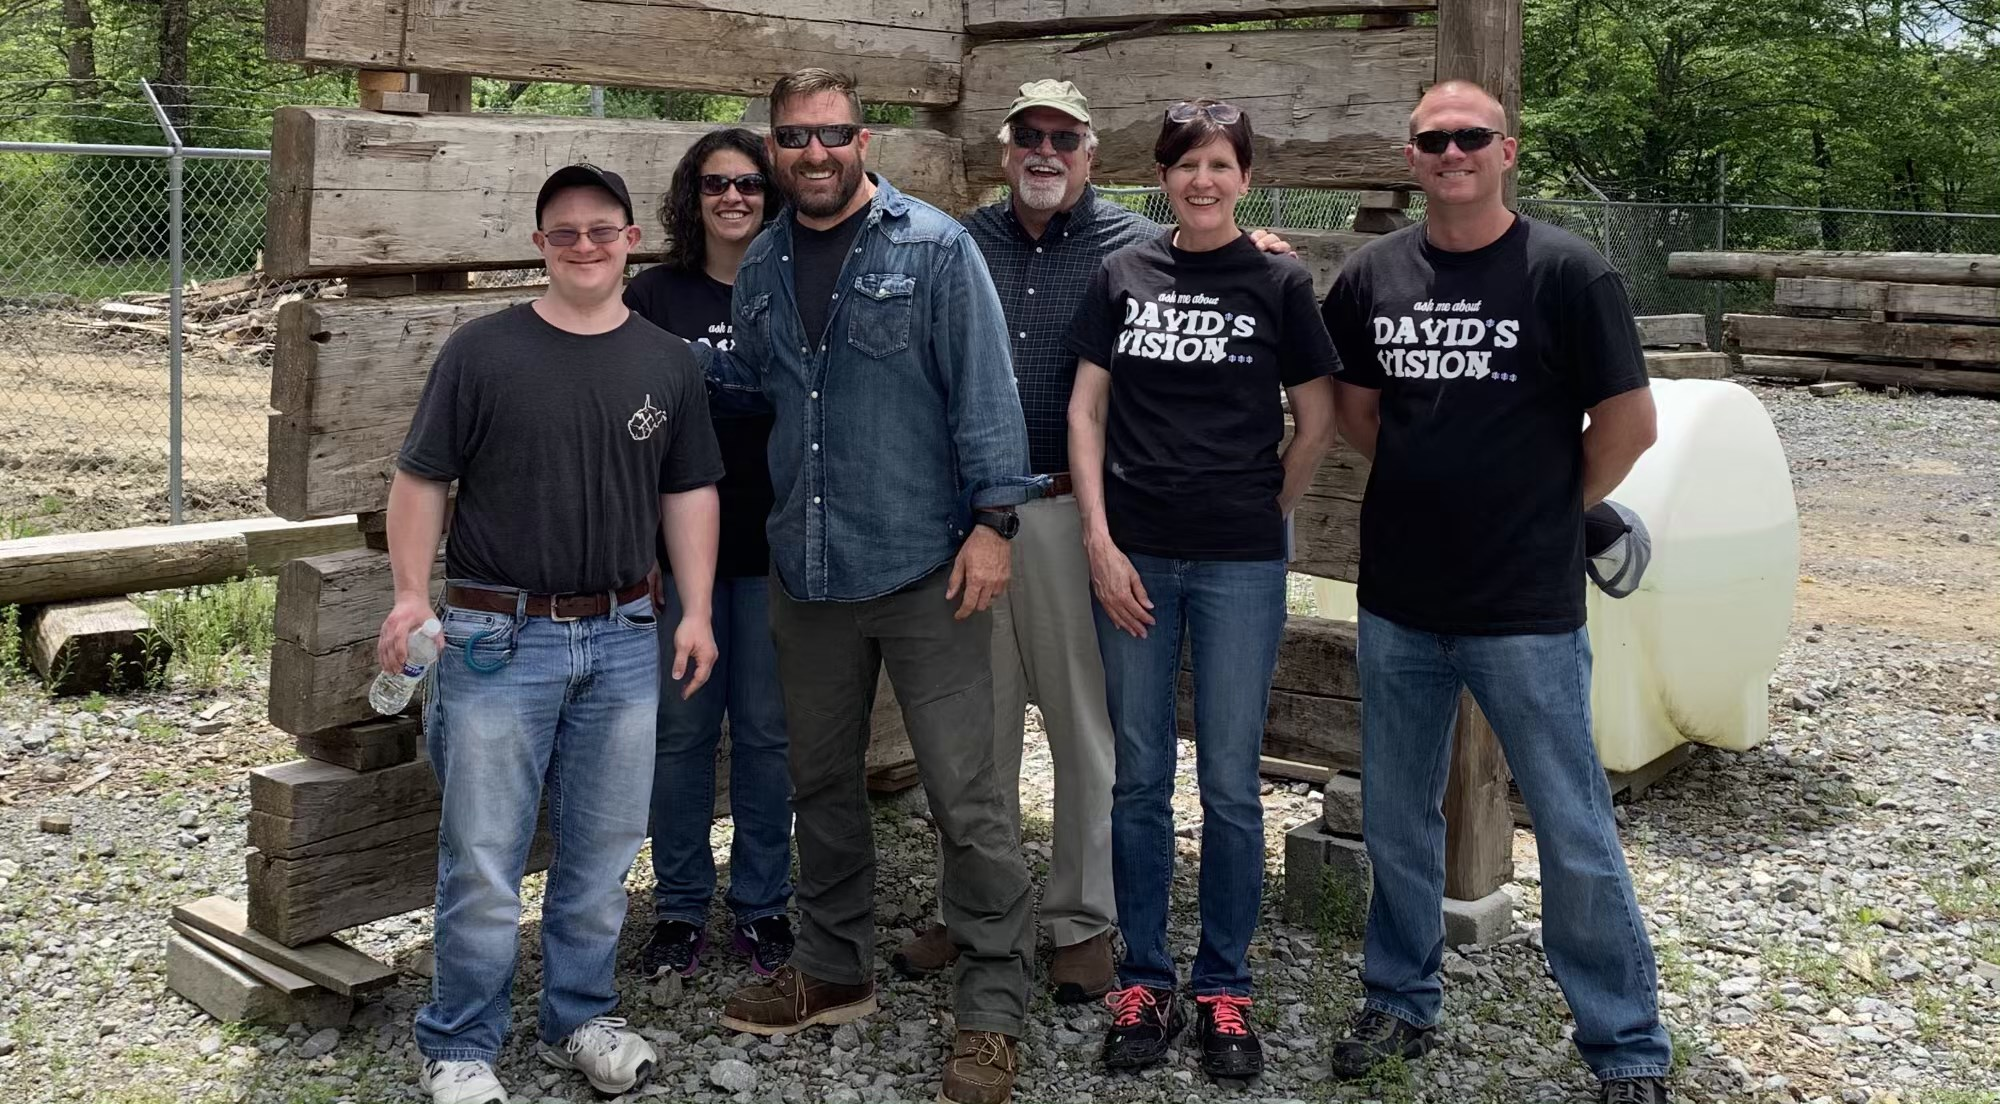 David, his mother Becky, his professor Dr. Kelly R. Kelley, and SimplyHome CEO Allen Ray Meet with Barnwood Builders in West Virginia.